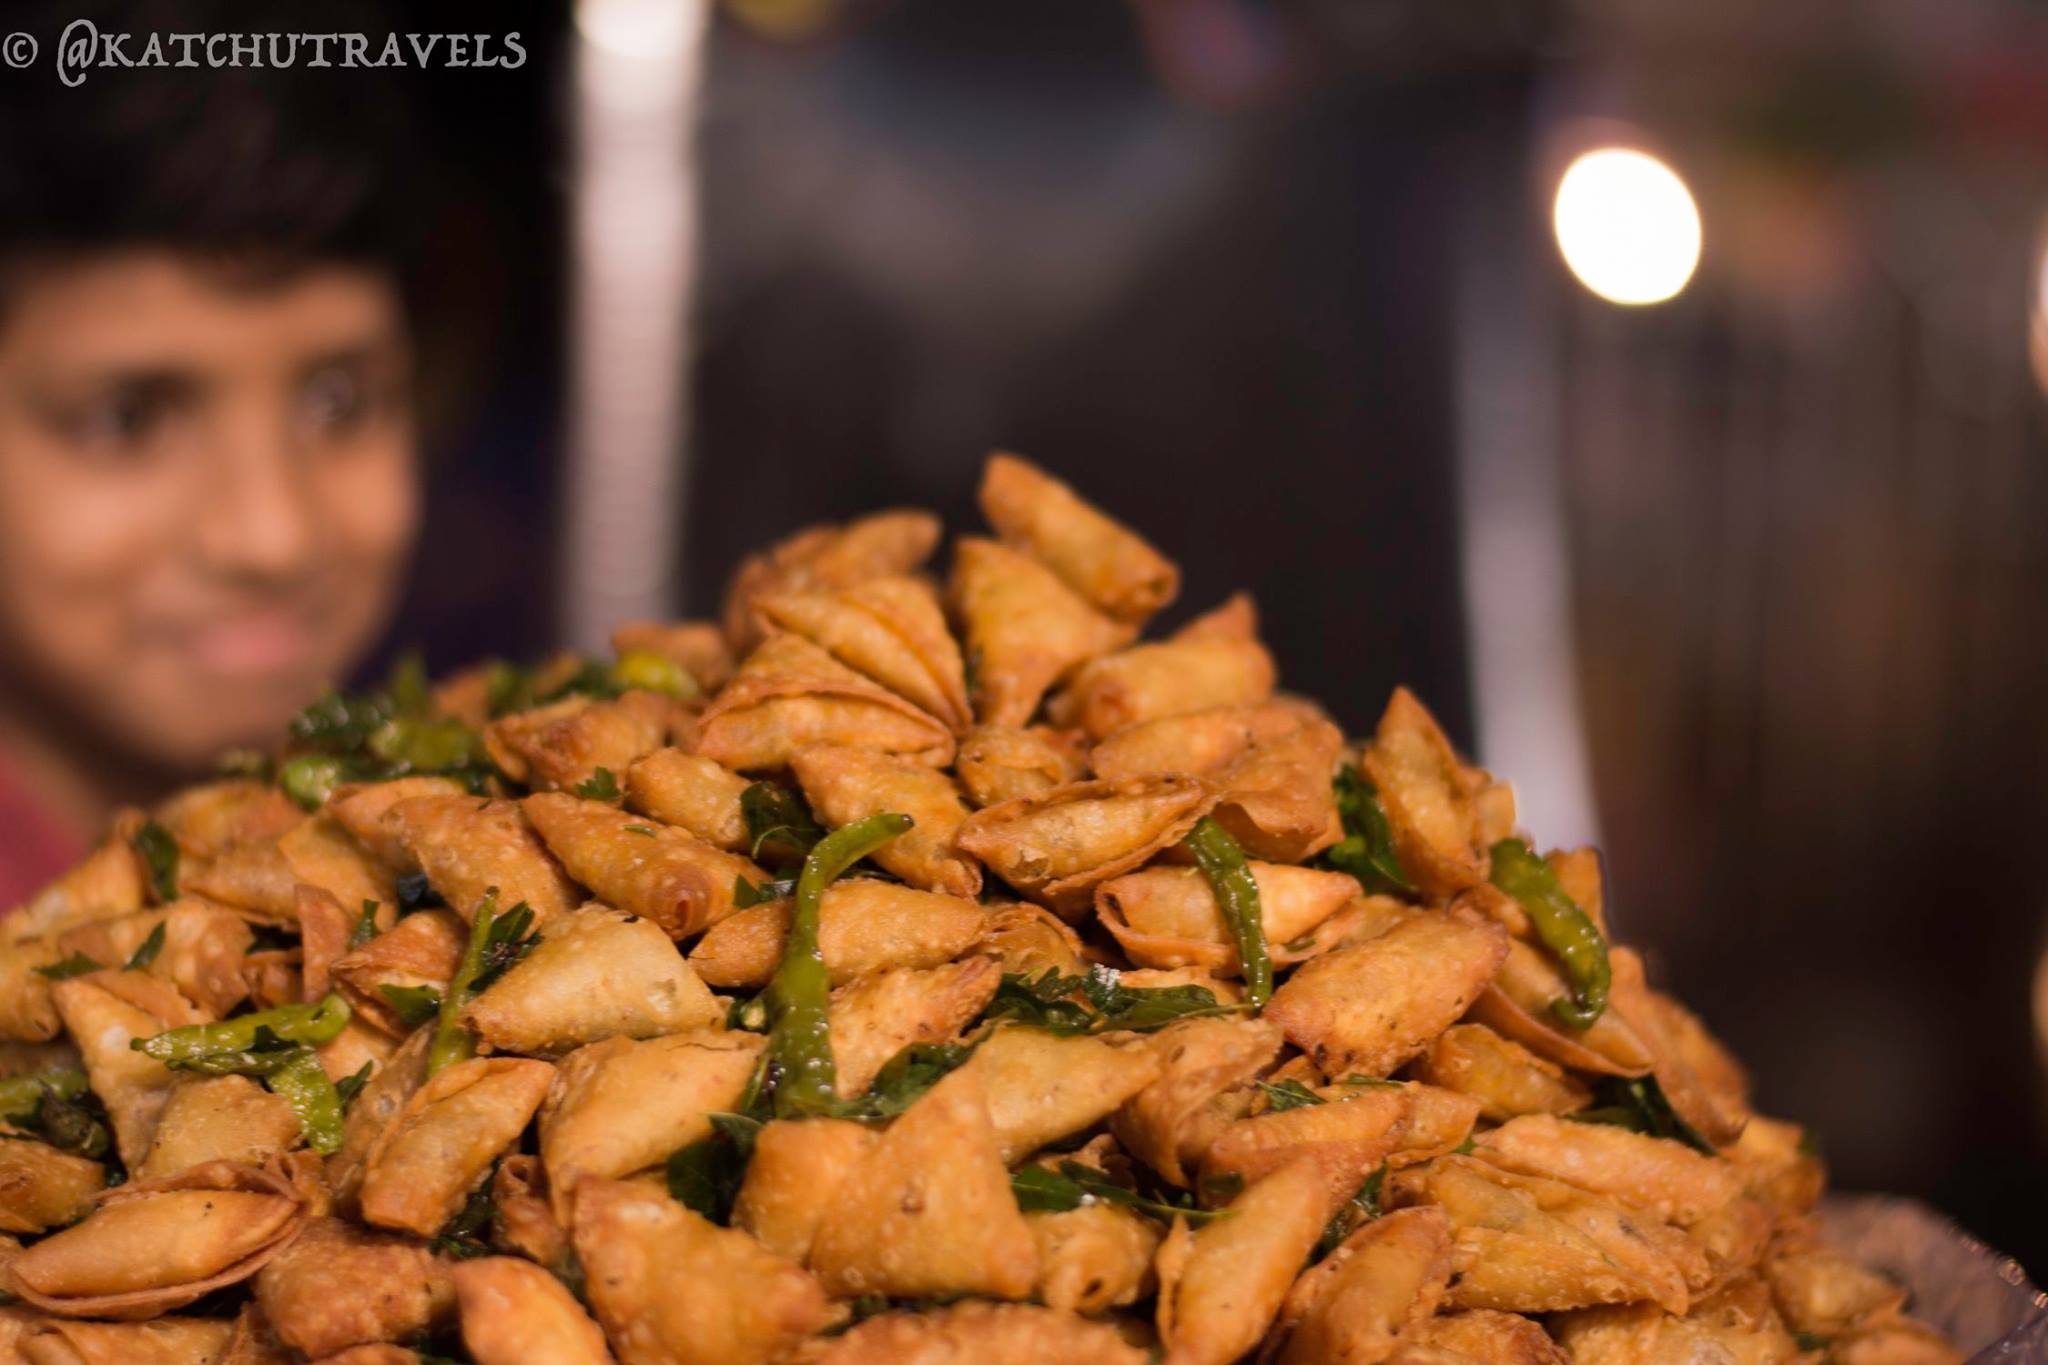 Spicy Samosas at Charminar